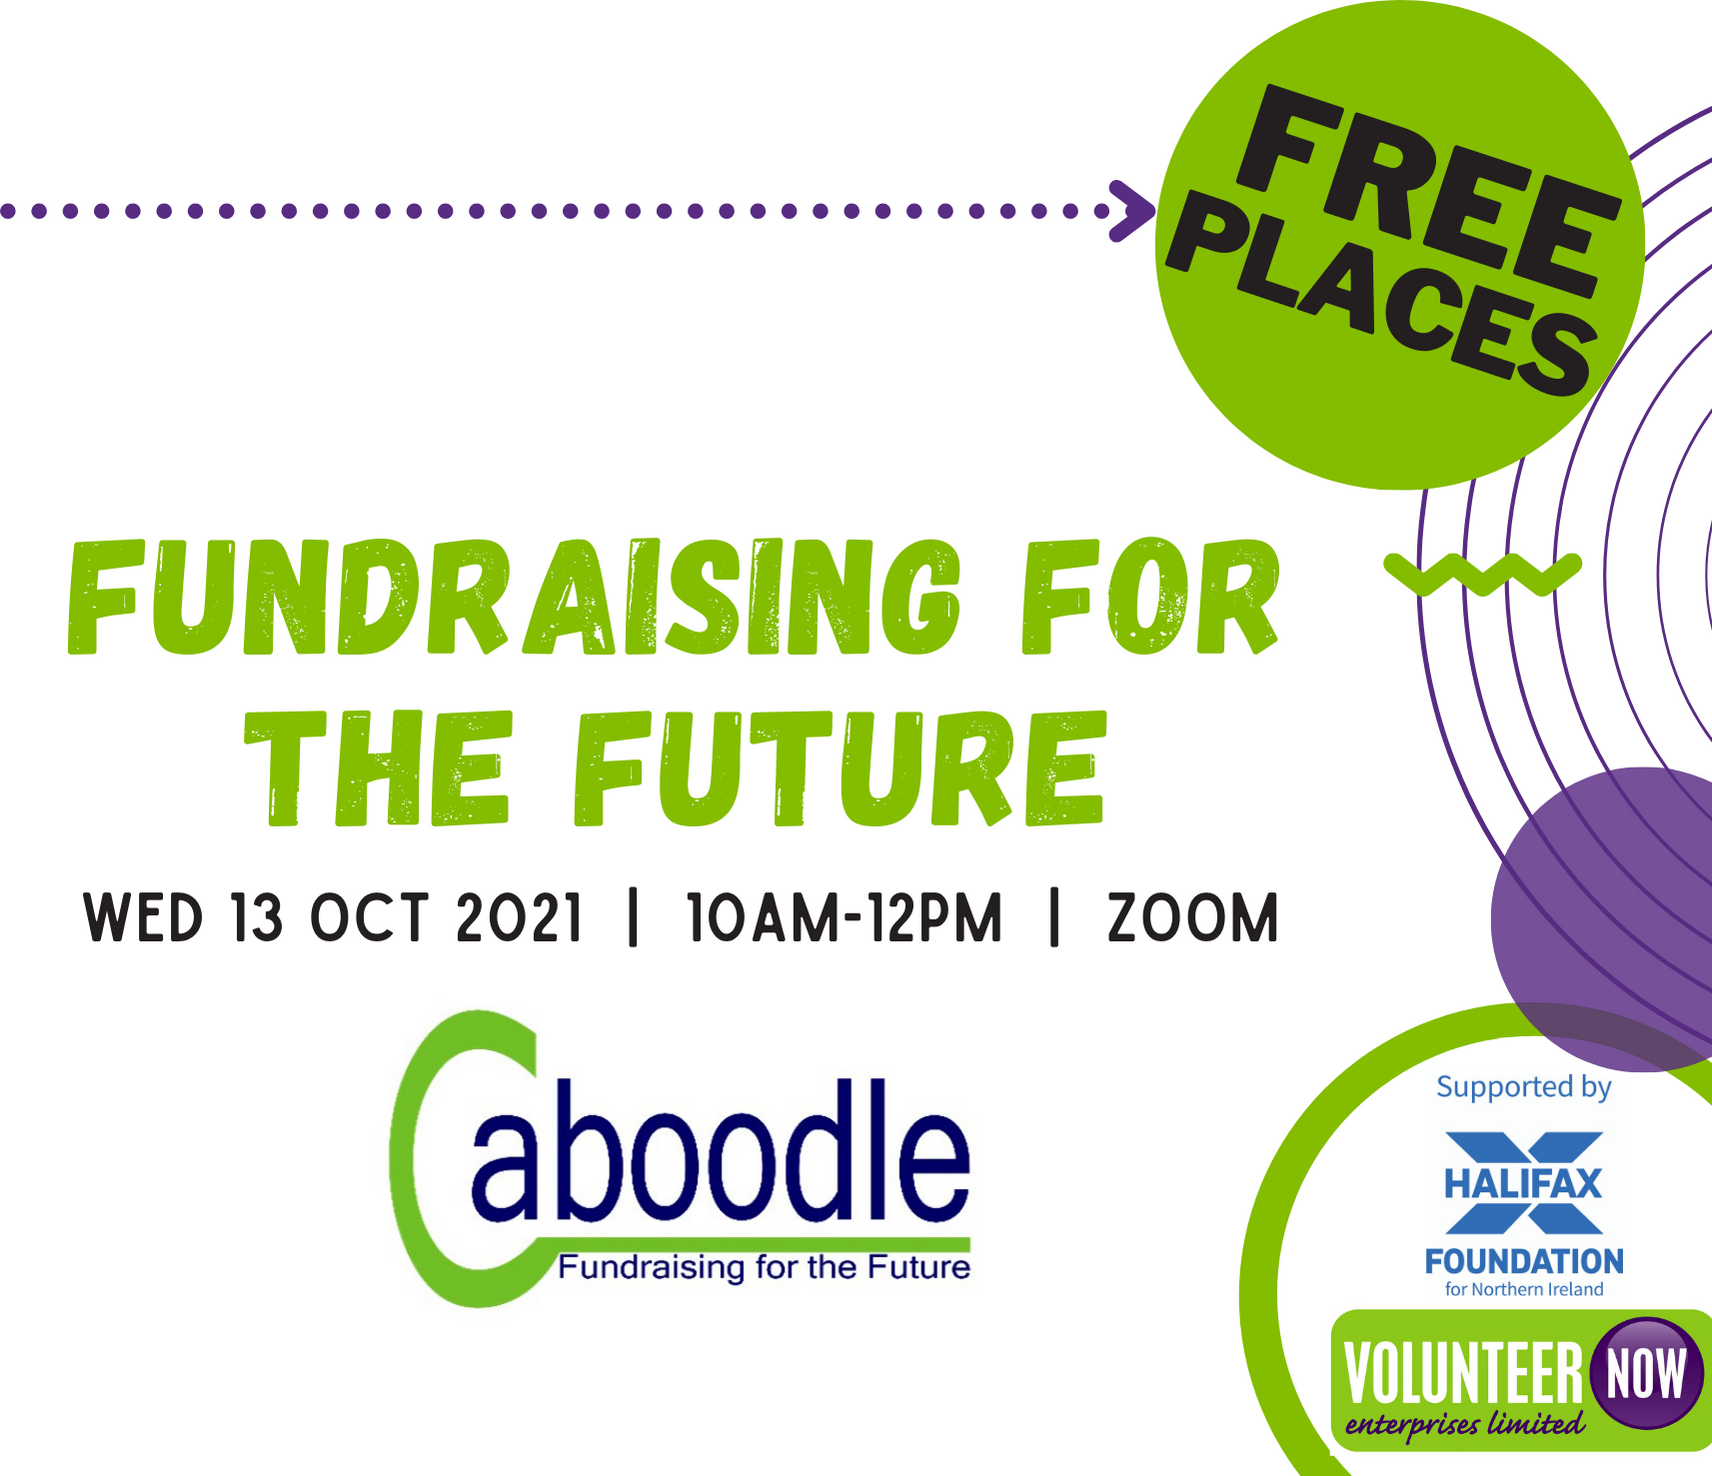 Fundraising for the Future